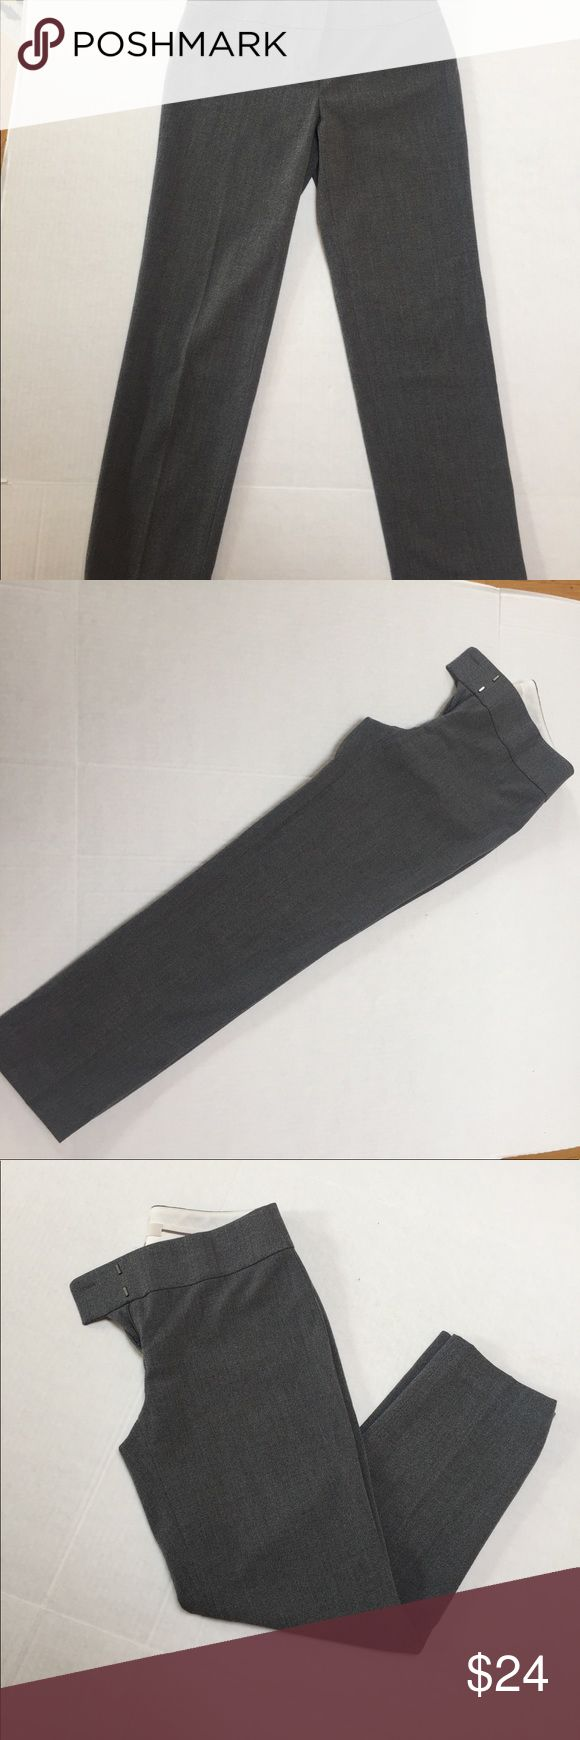 Anne Taylor Loft crop pants These are a great pair of crop pants from Ann Taylor Loft. They were worn twice and are in great condition. Ann Taylor Other